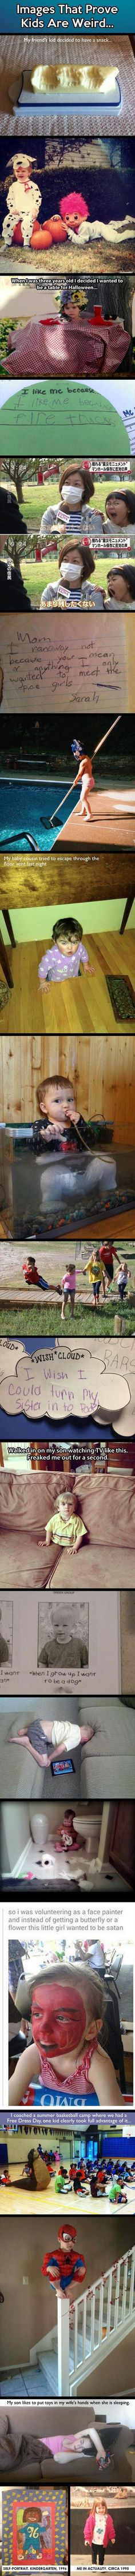 Images That Prove Kids Are Weird funny family cute kids weird adorable parenting humor funny pictures funny kids